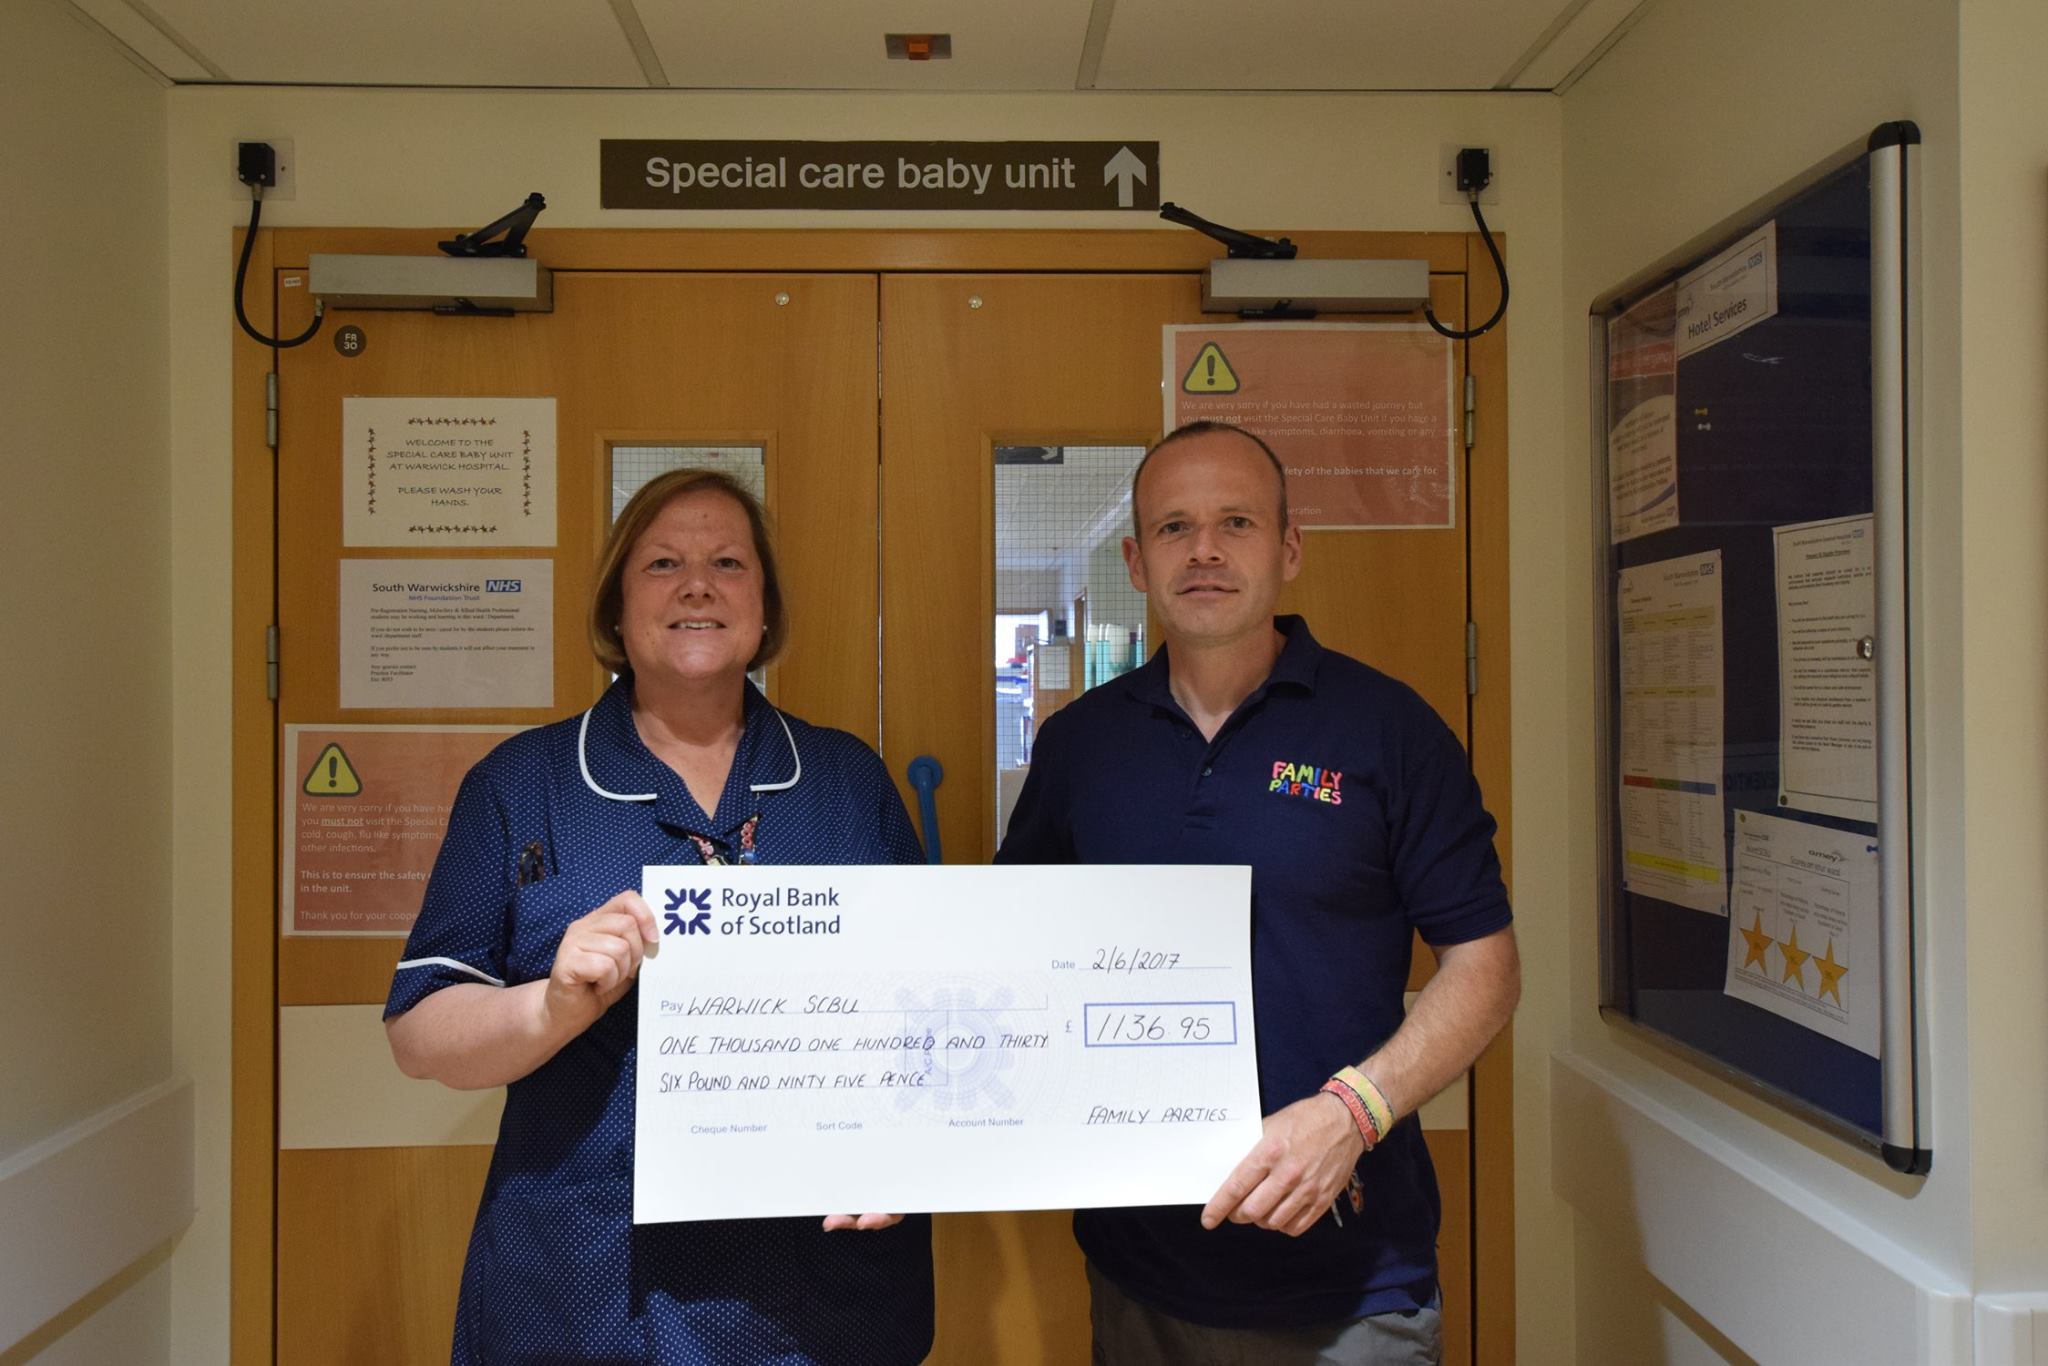 Family Parties cheque presentation to Warwick Hospitals SCBU (Special Care Baby Unit)